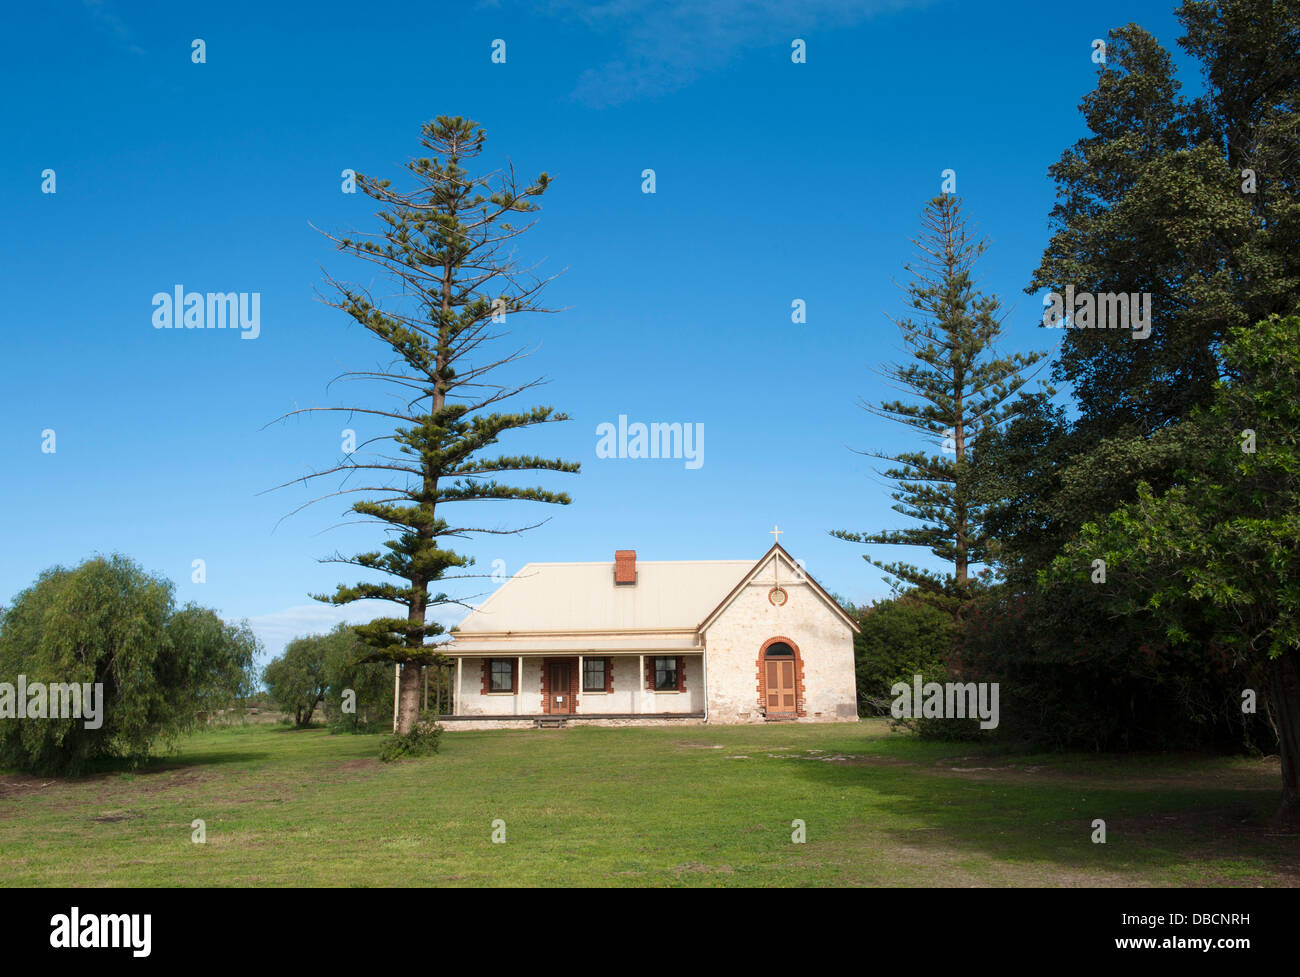 Homestead at the Central Greenough Historic Settlement, displaying heritage buildings by early settlers, Greenough, - Stock Image